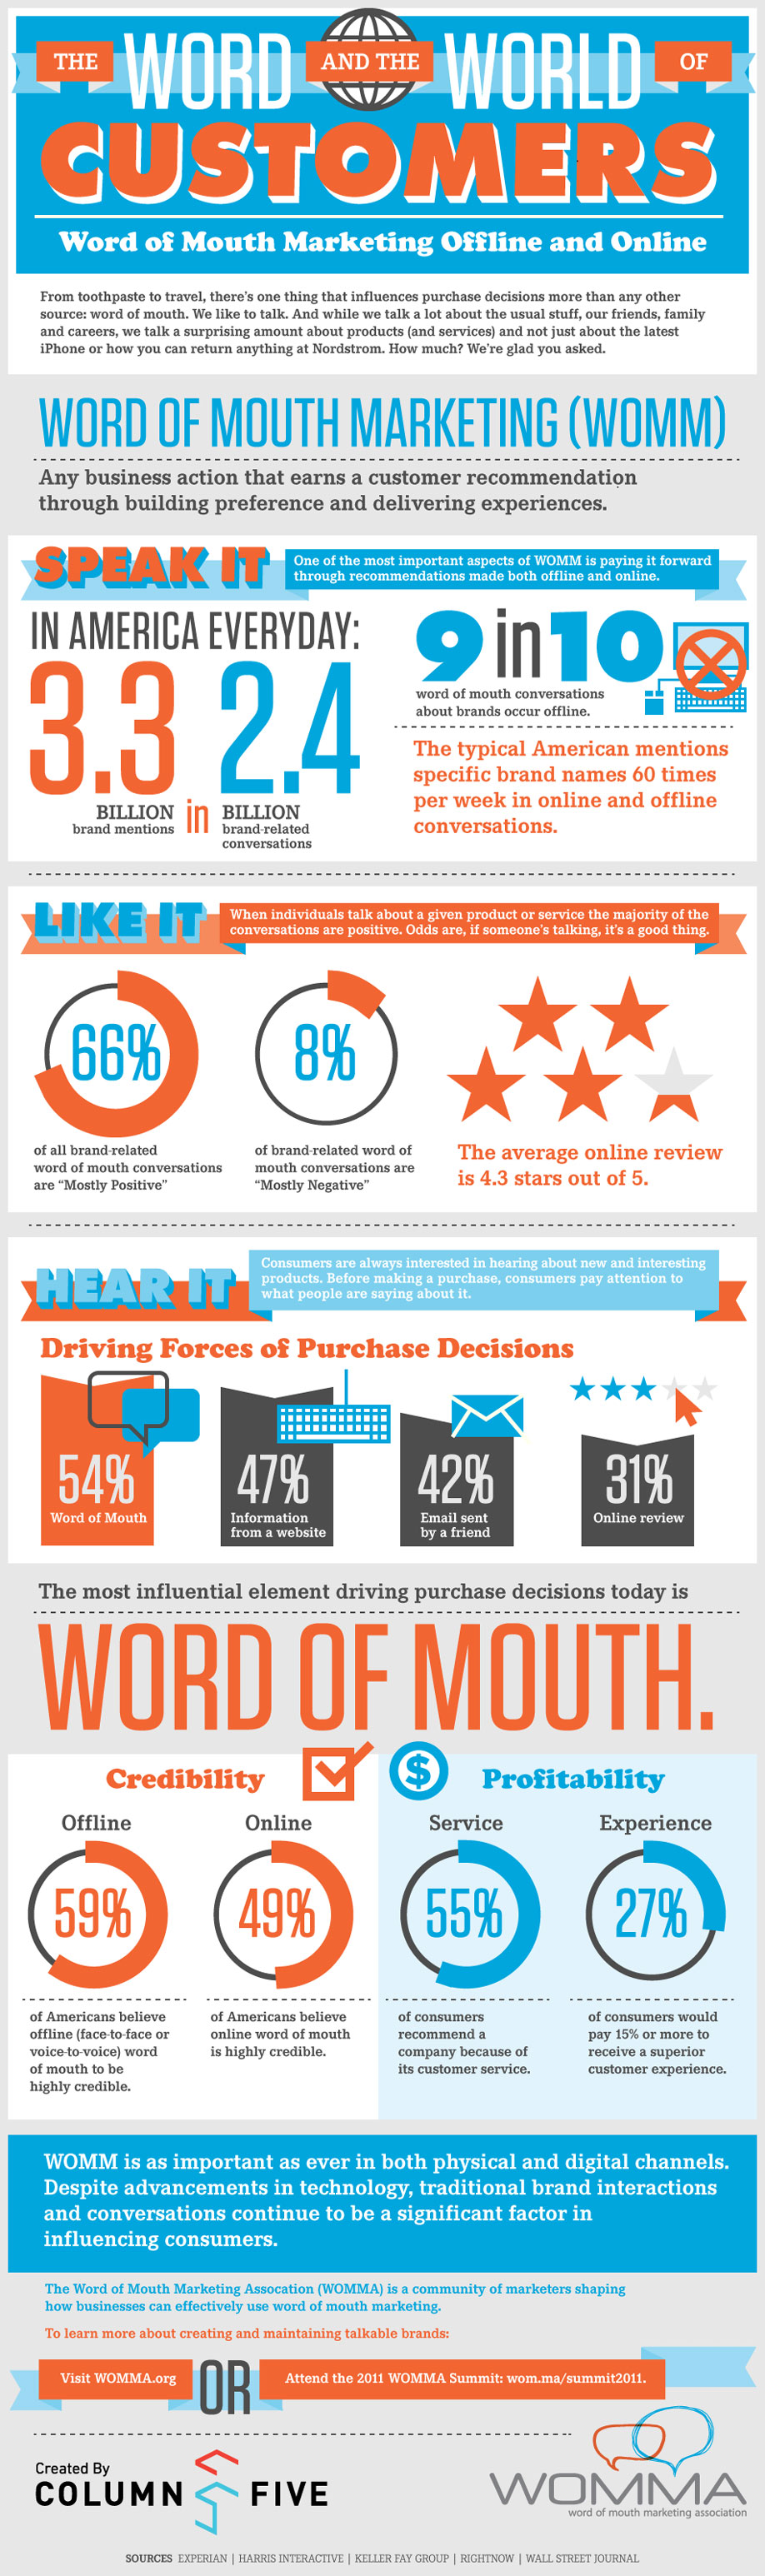 The Word and the World of Customers